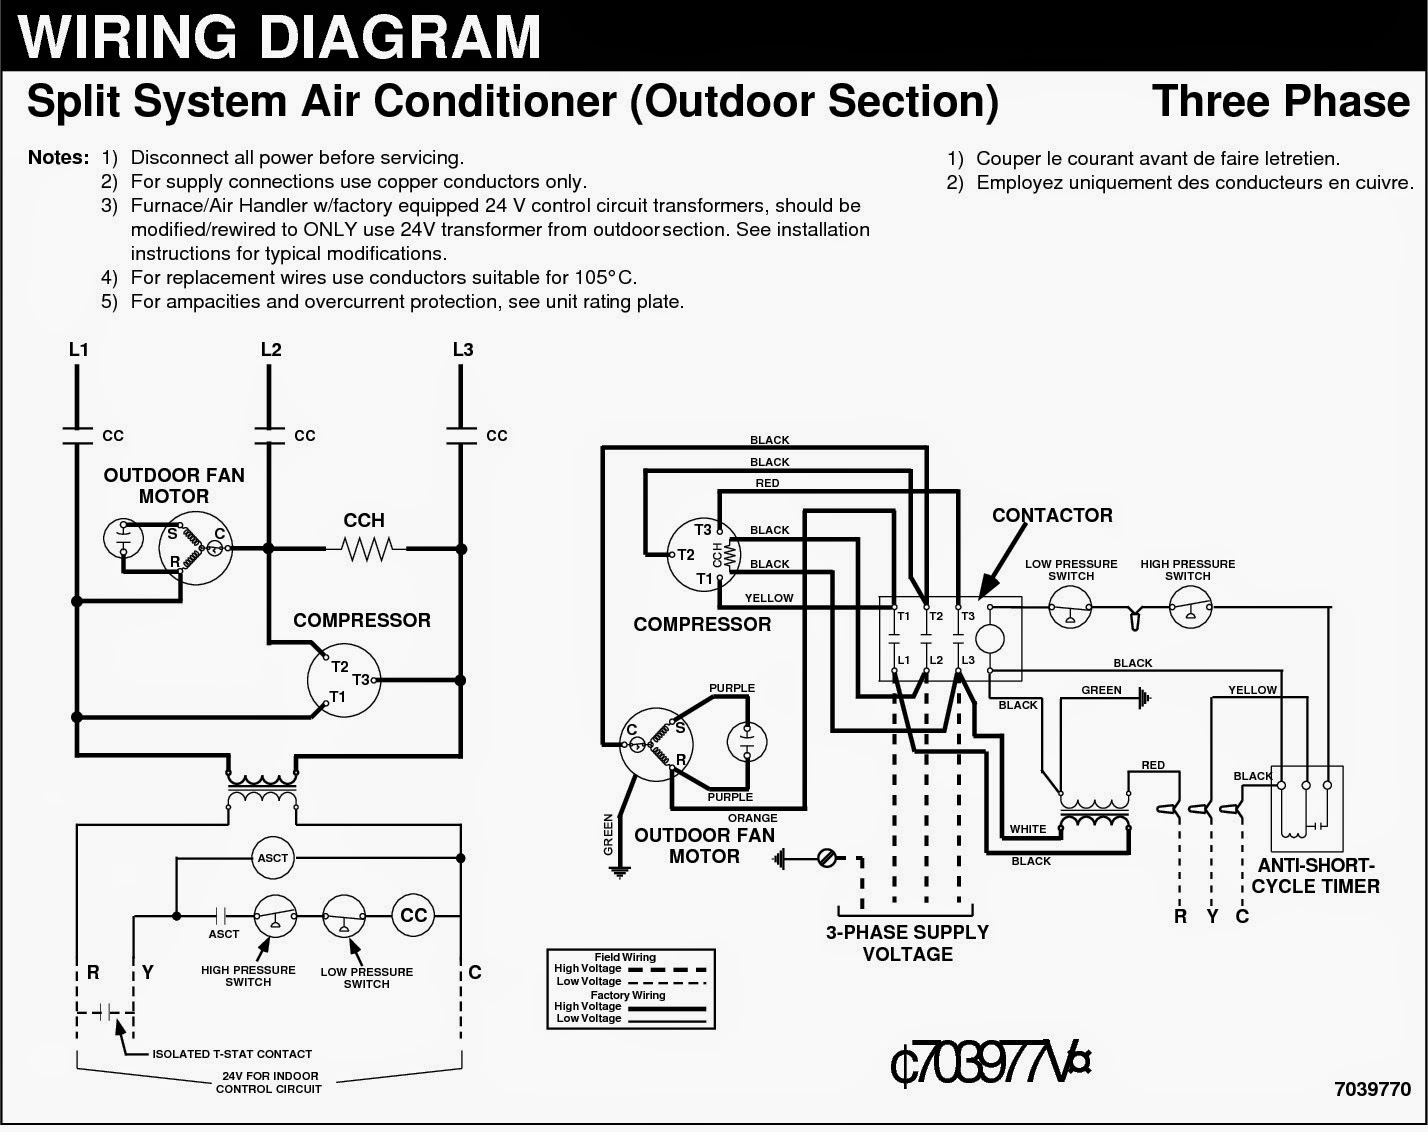 3 wire condenser fan motor wiring diagrams with Electrical Wiring Diagrams For Air Conditioning on Nissan Titan Wiring Diagram And Body Electrical Parts Schematic additionally Showthread further 30591 2001 Pt Cruiser Radiator Fan Wont Work as well Emerson Electric Motors Wiring Diagrams furthermore 08 Ranger Hvac Wiring Diagram.